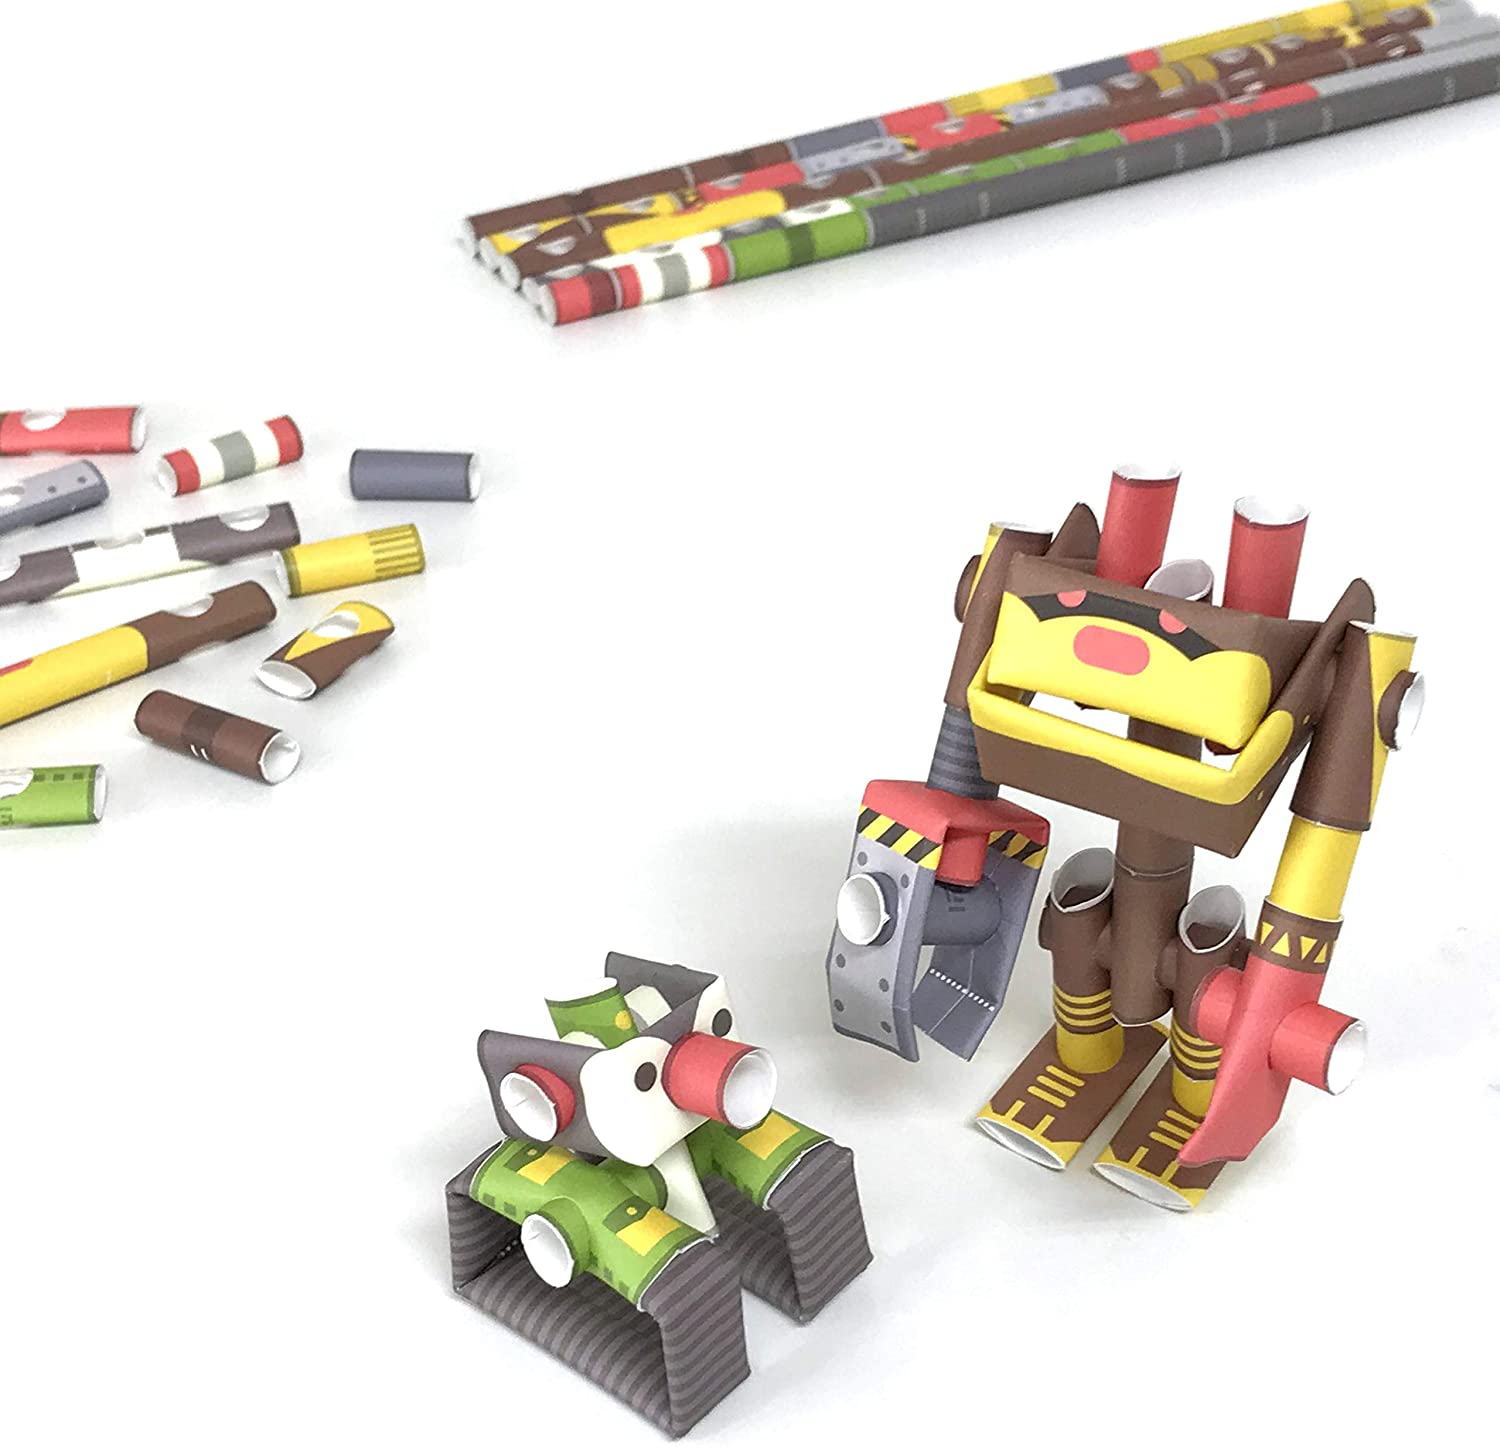 PIPEROID DIY 3D Puzzle Paper Craft Kit Penk & Bearborg Professor & Robot Bear - Japanese Arts and Craft Kit for Kids and Adults - Birthday Gift and Party Favor for Origami Paper Craft Enthusiasts